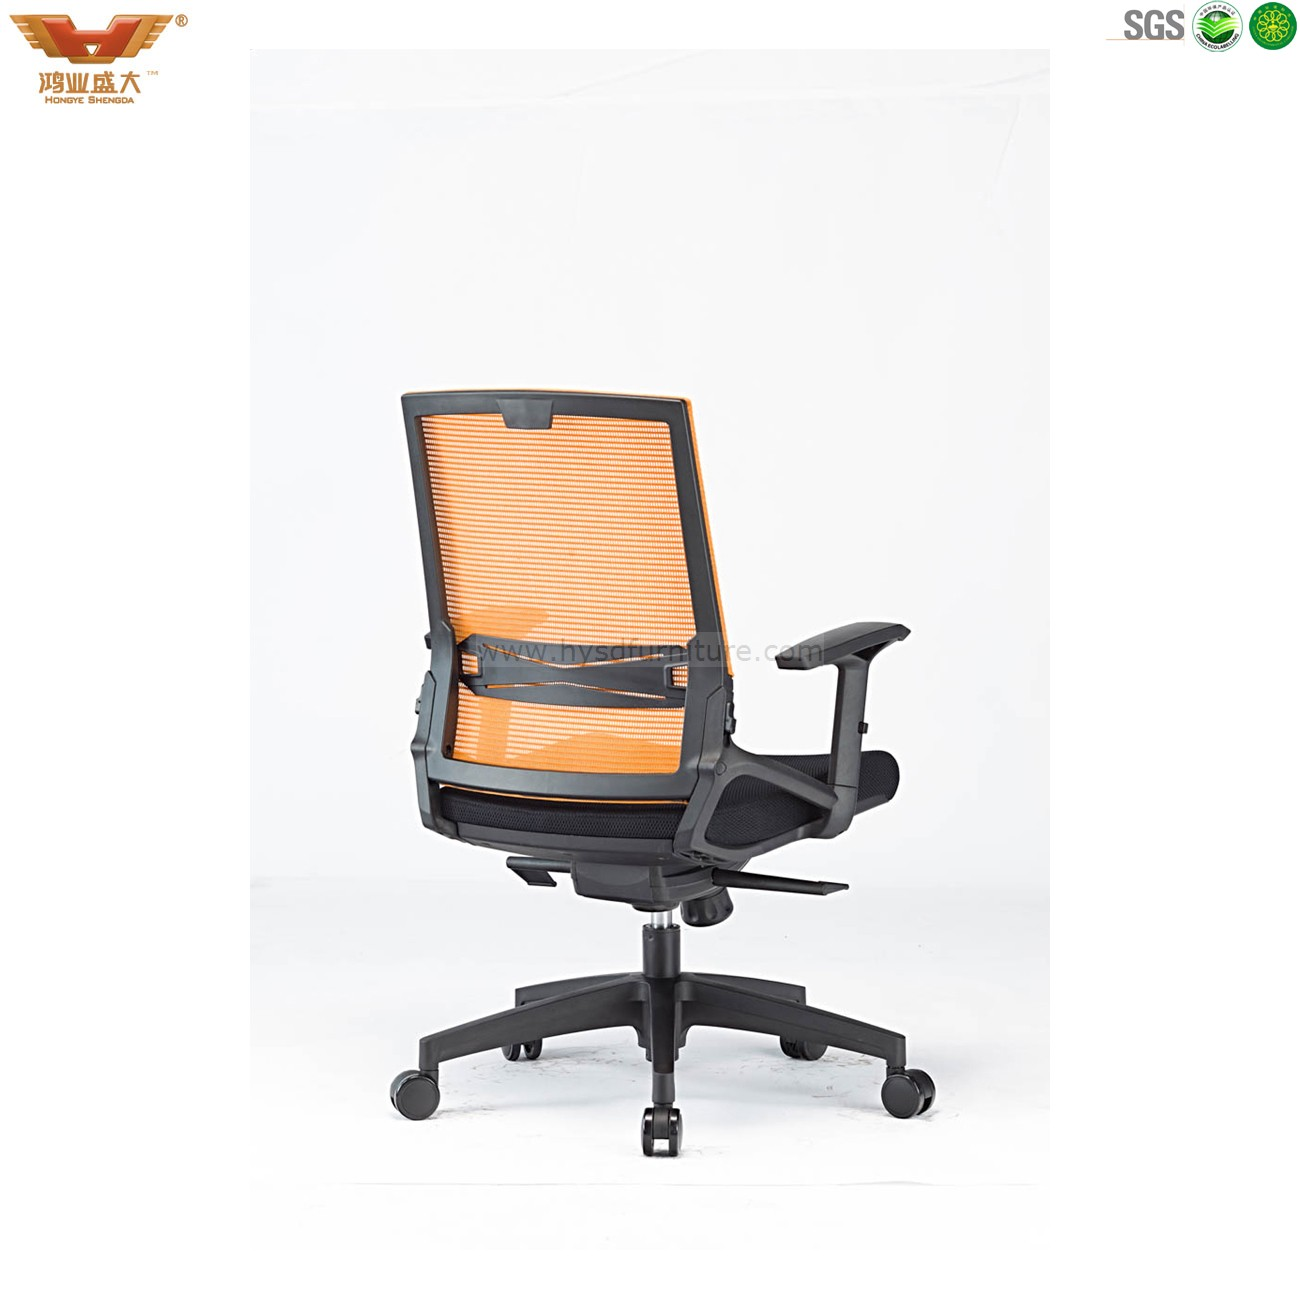 New Model Mesh Chair Office